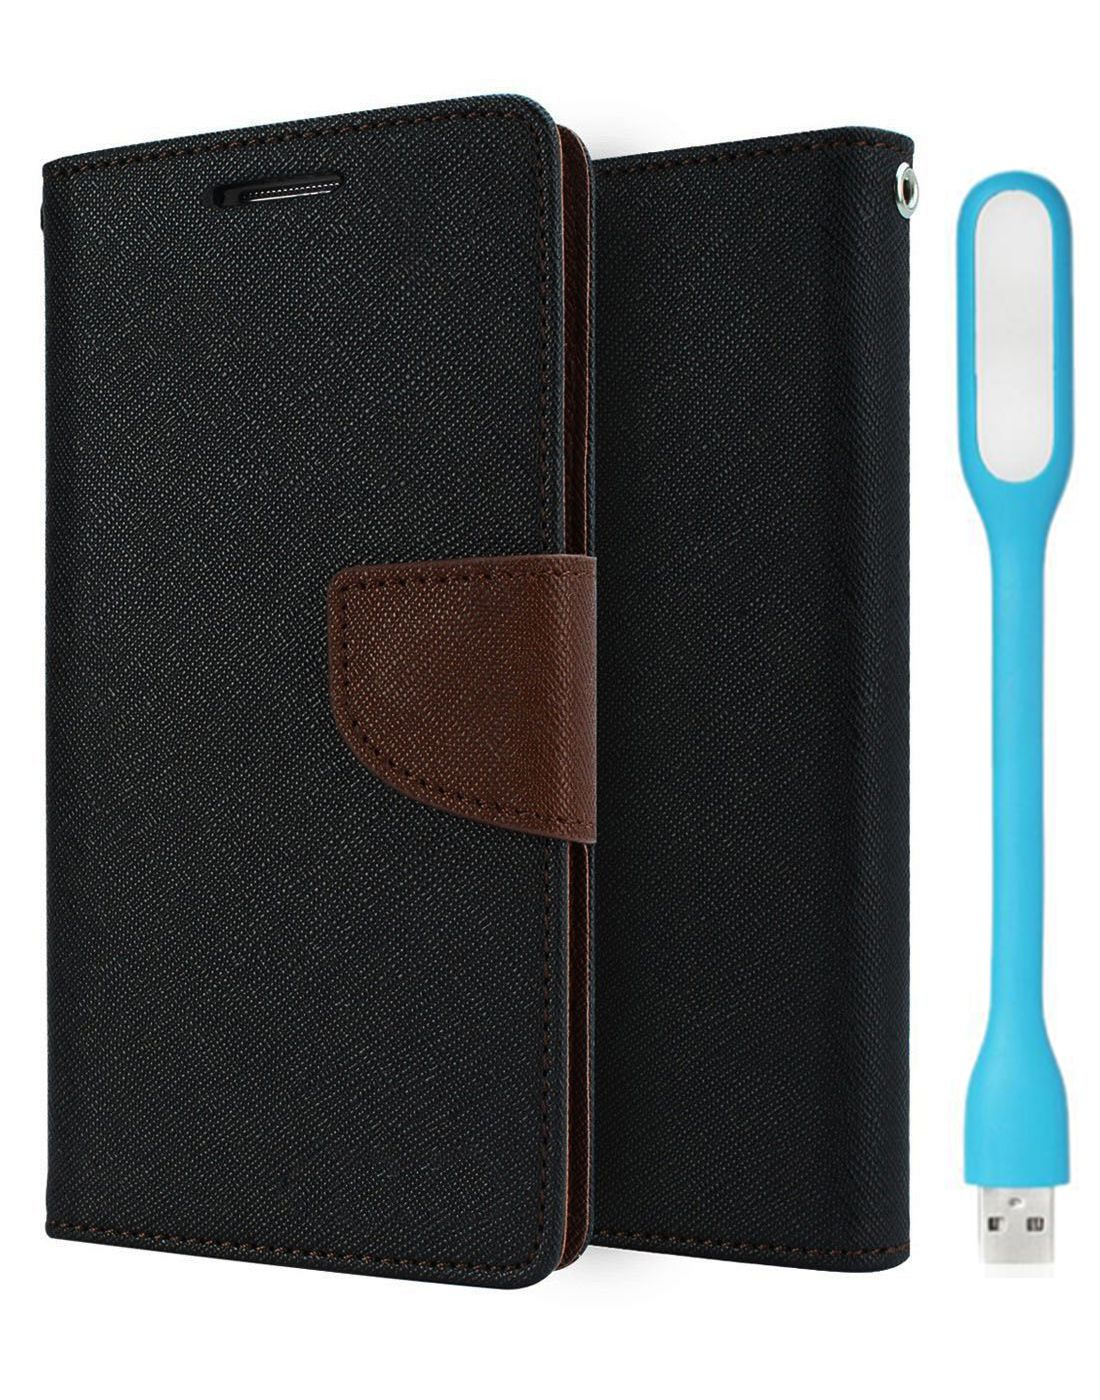 Wallet Flip Case Back Cover For Sony Xpria T3 - (Blackbrown) + Flexible Mini LED Stick Lamp Light By Style Crome